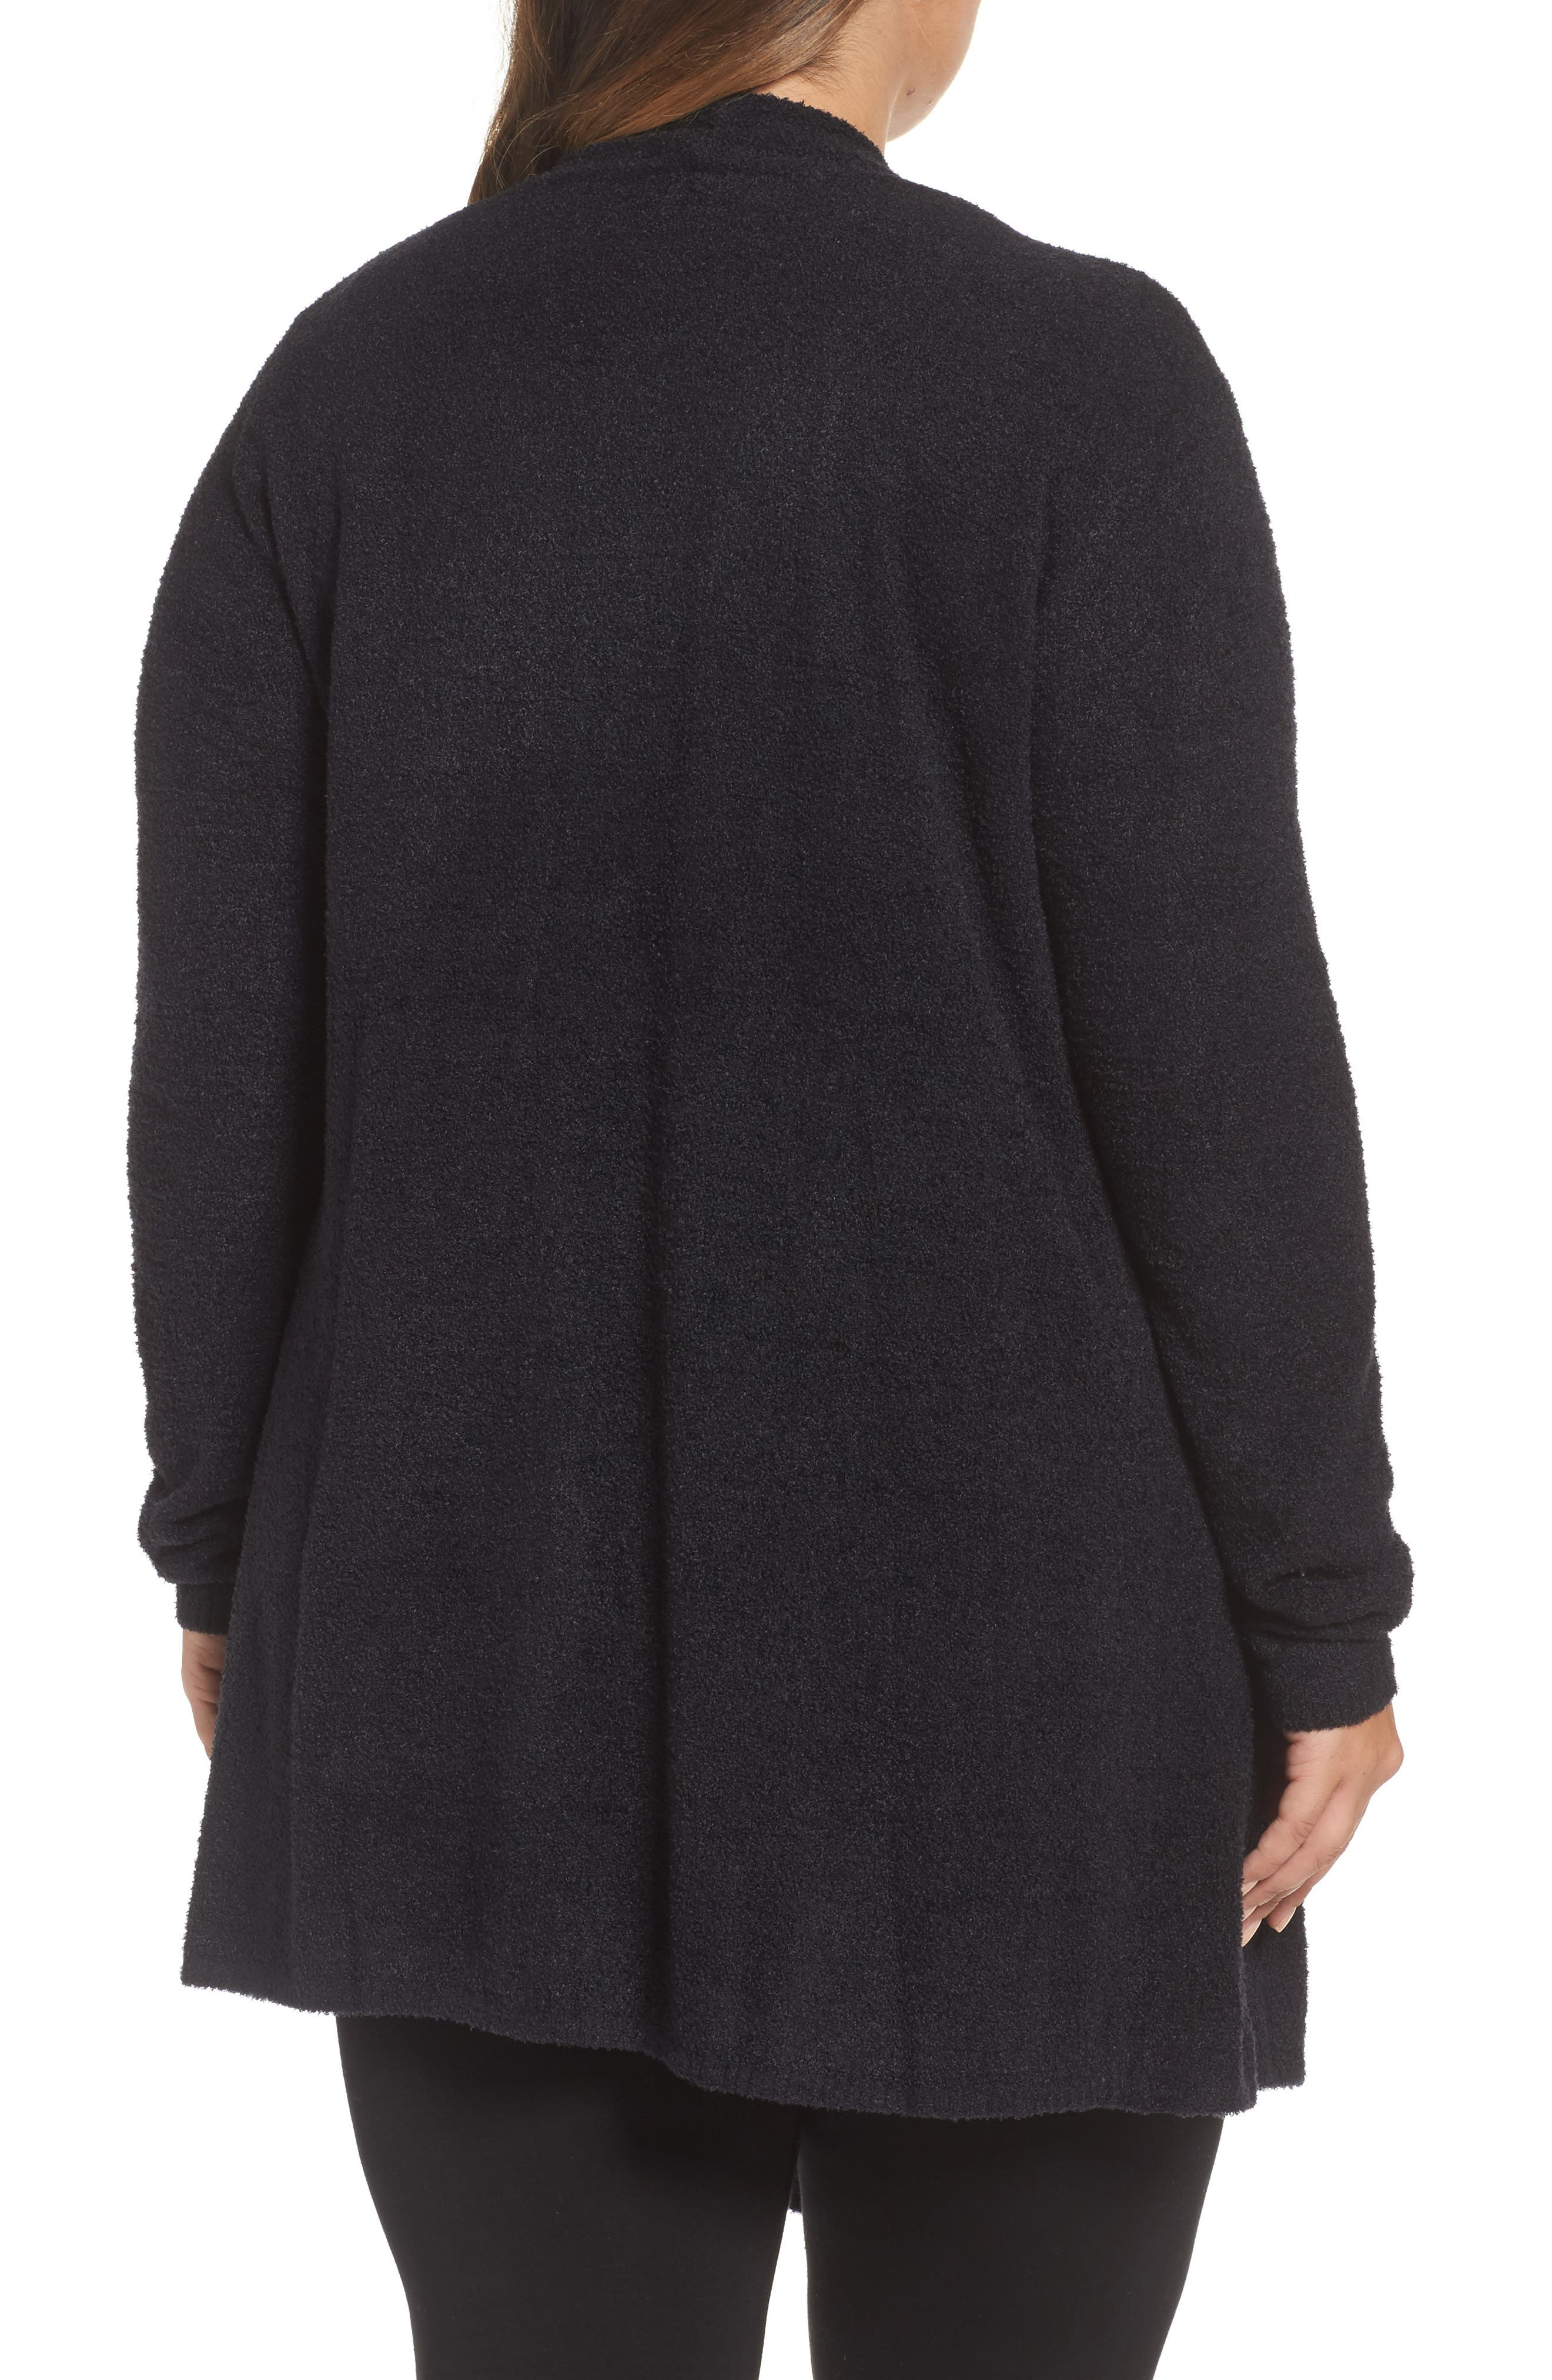 CozyChic Lite<sup>®</sup> Calypso Wrap Cardigan,                             Alternate thumbnail 2, color,                             001